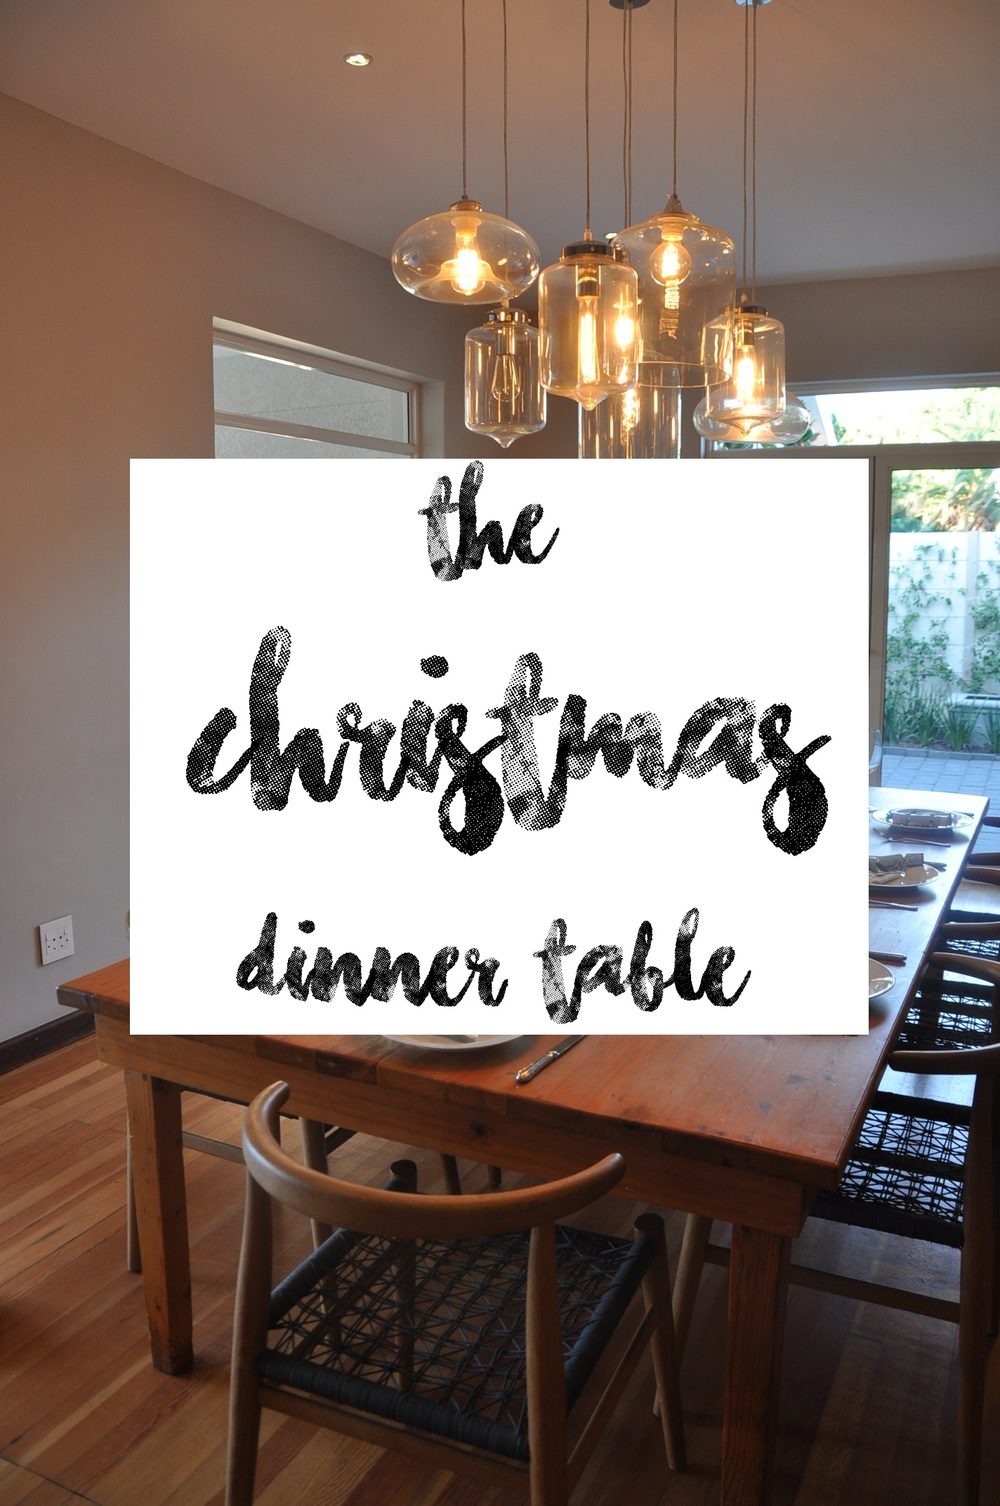 Decorating the Christmas Dinner Table - How to lay a simple, minimalist and festive table setting. A Lovely Space | alovelyspace.com